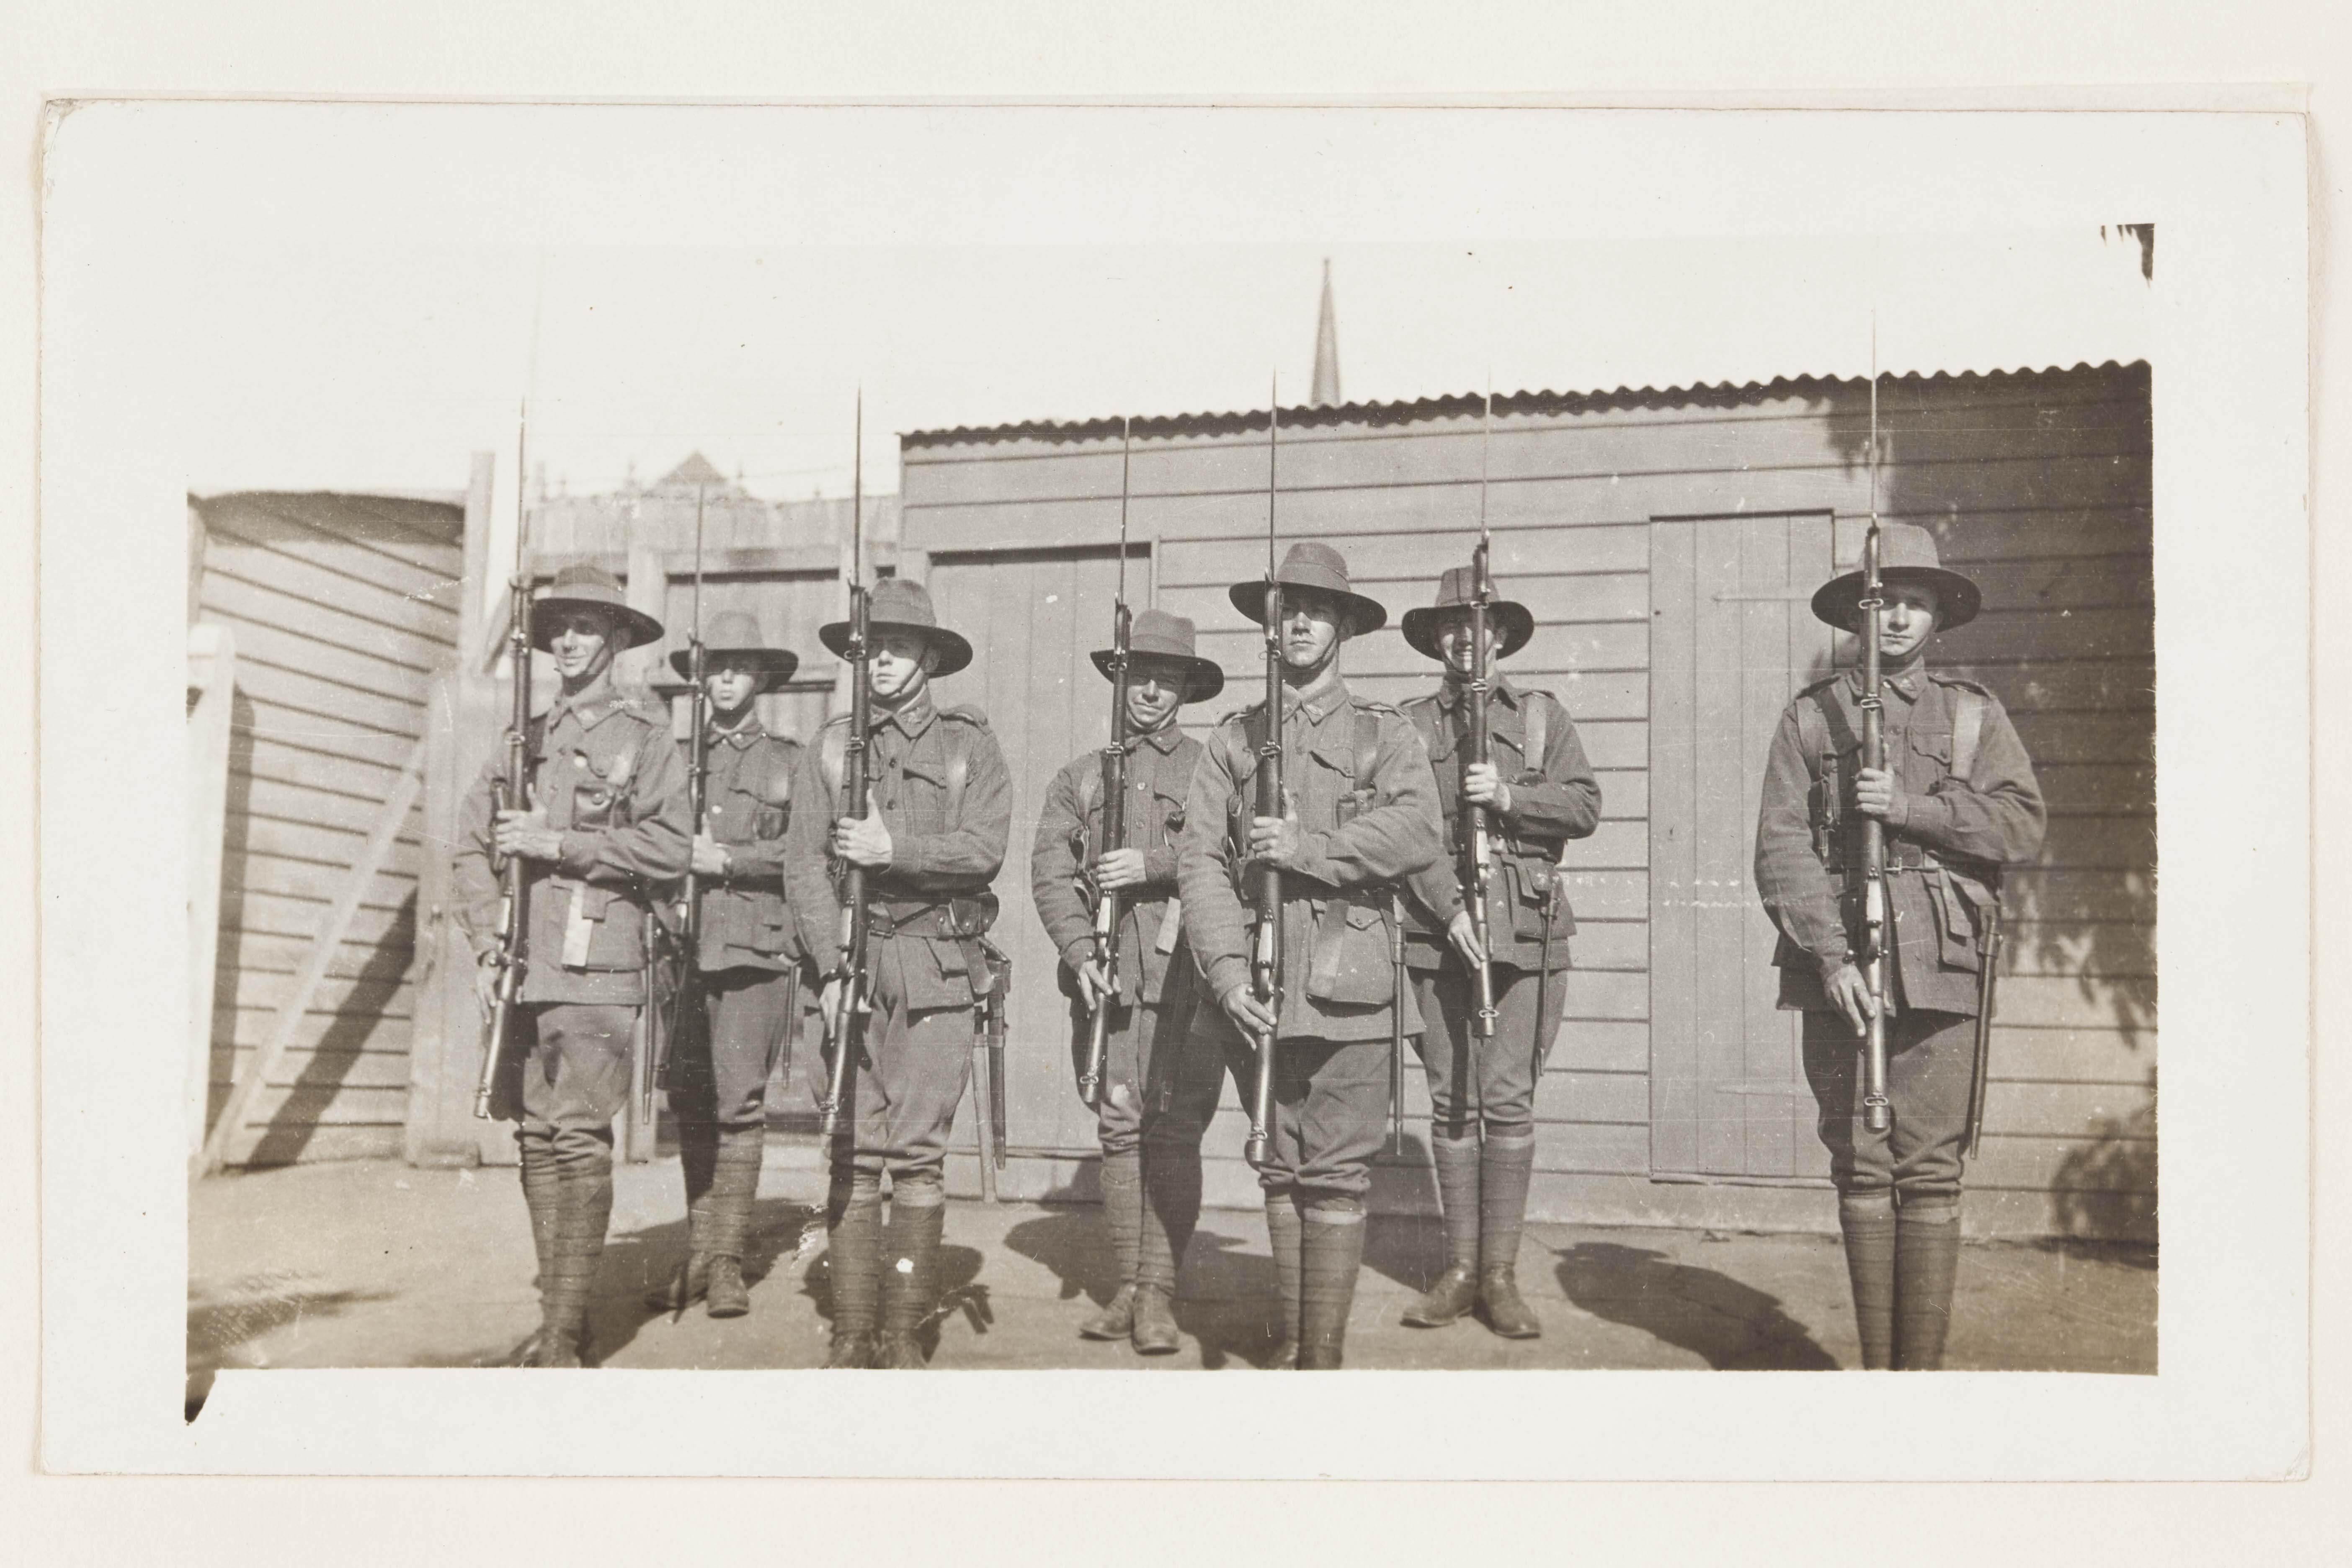 Photo of soldiers in WW1